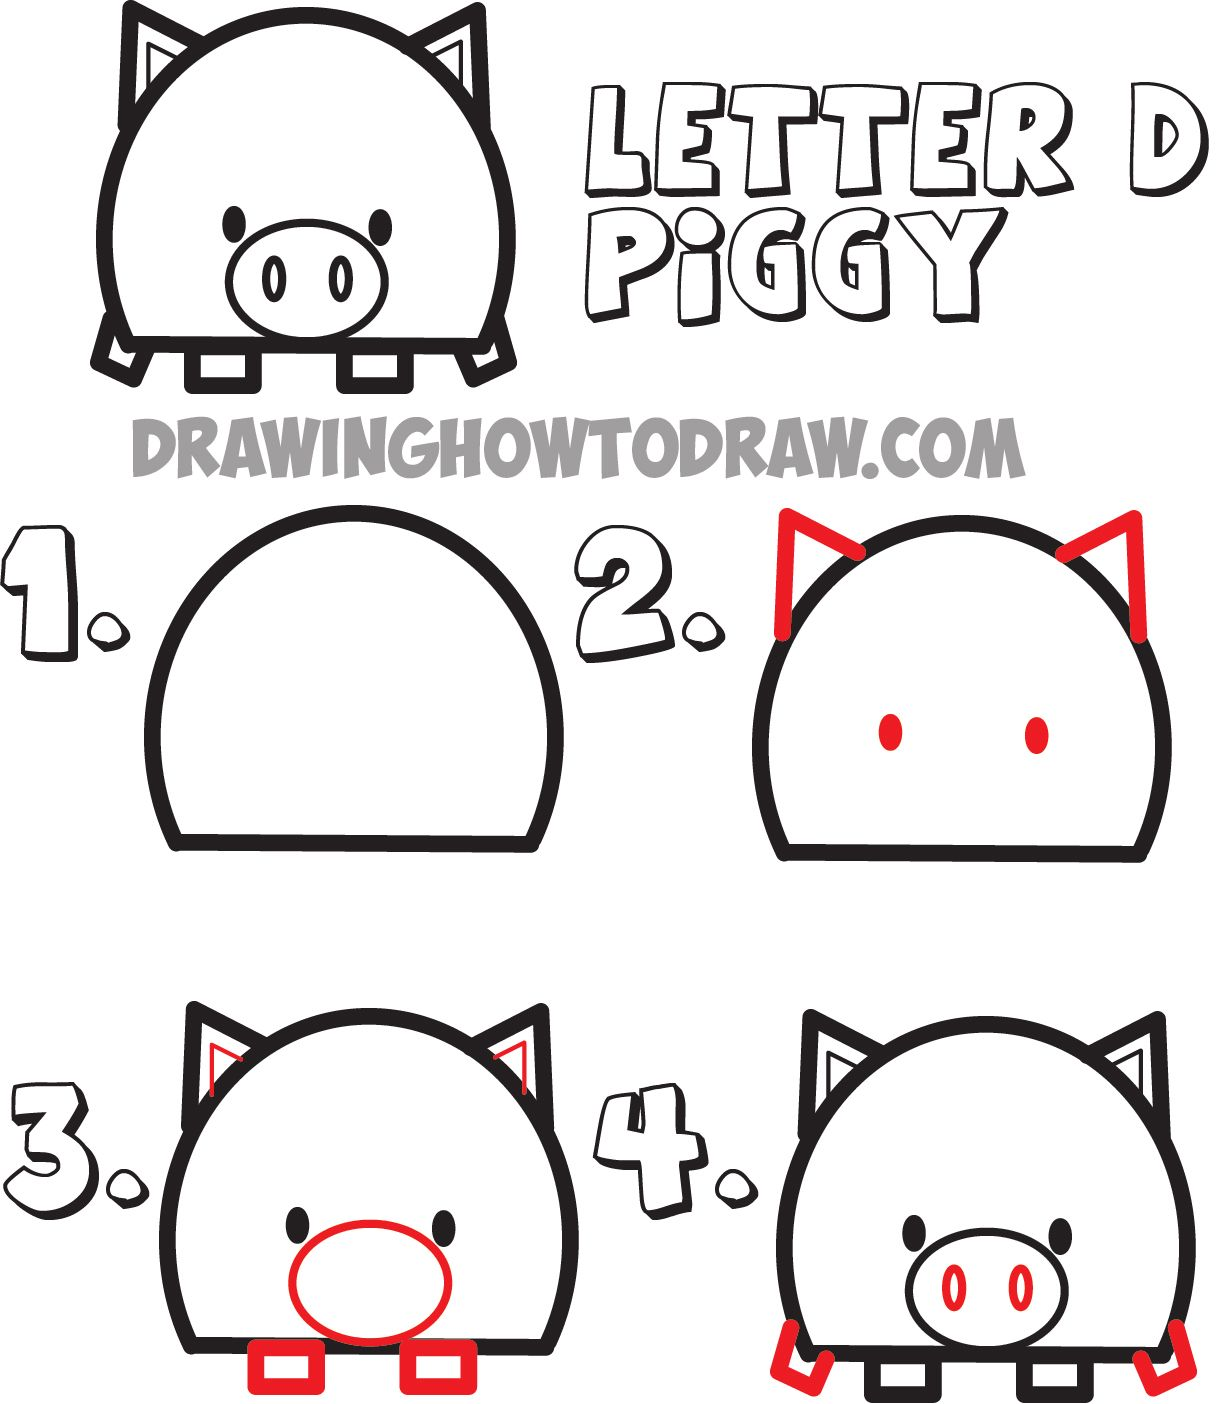 Huge Guide To Drawing Cartoon Animals From The Uppercase Letter D Drawing Tutorial For Kids How To Draw Step By Step Drawing Tutorials Cartoon Drawings Drawing Tutorial Cartoon Drawings Of Animals